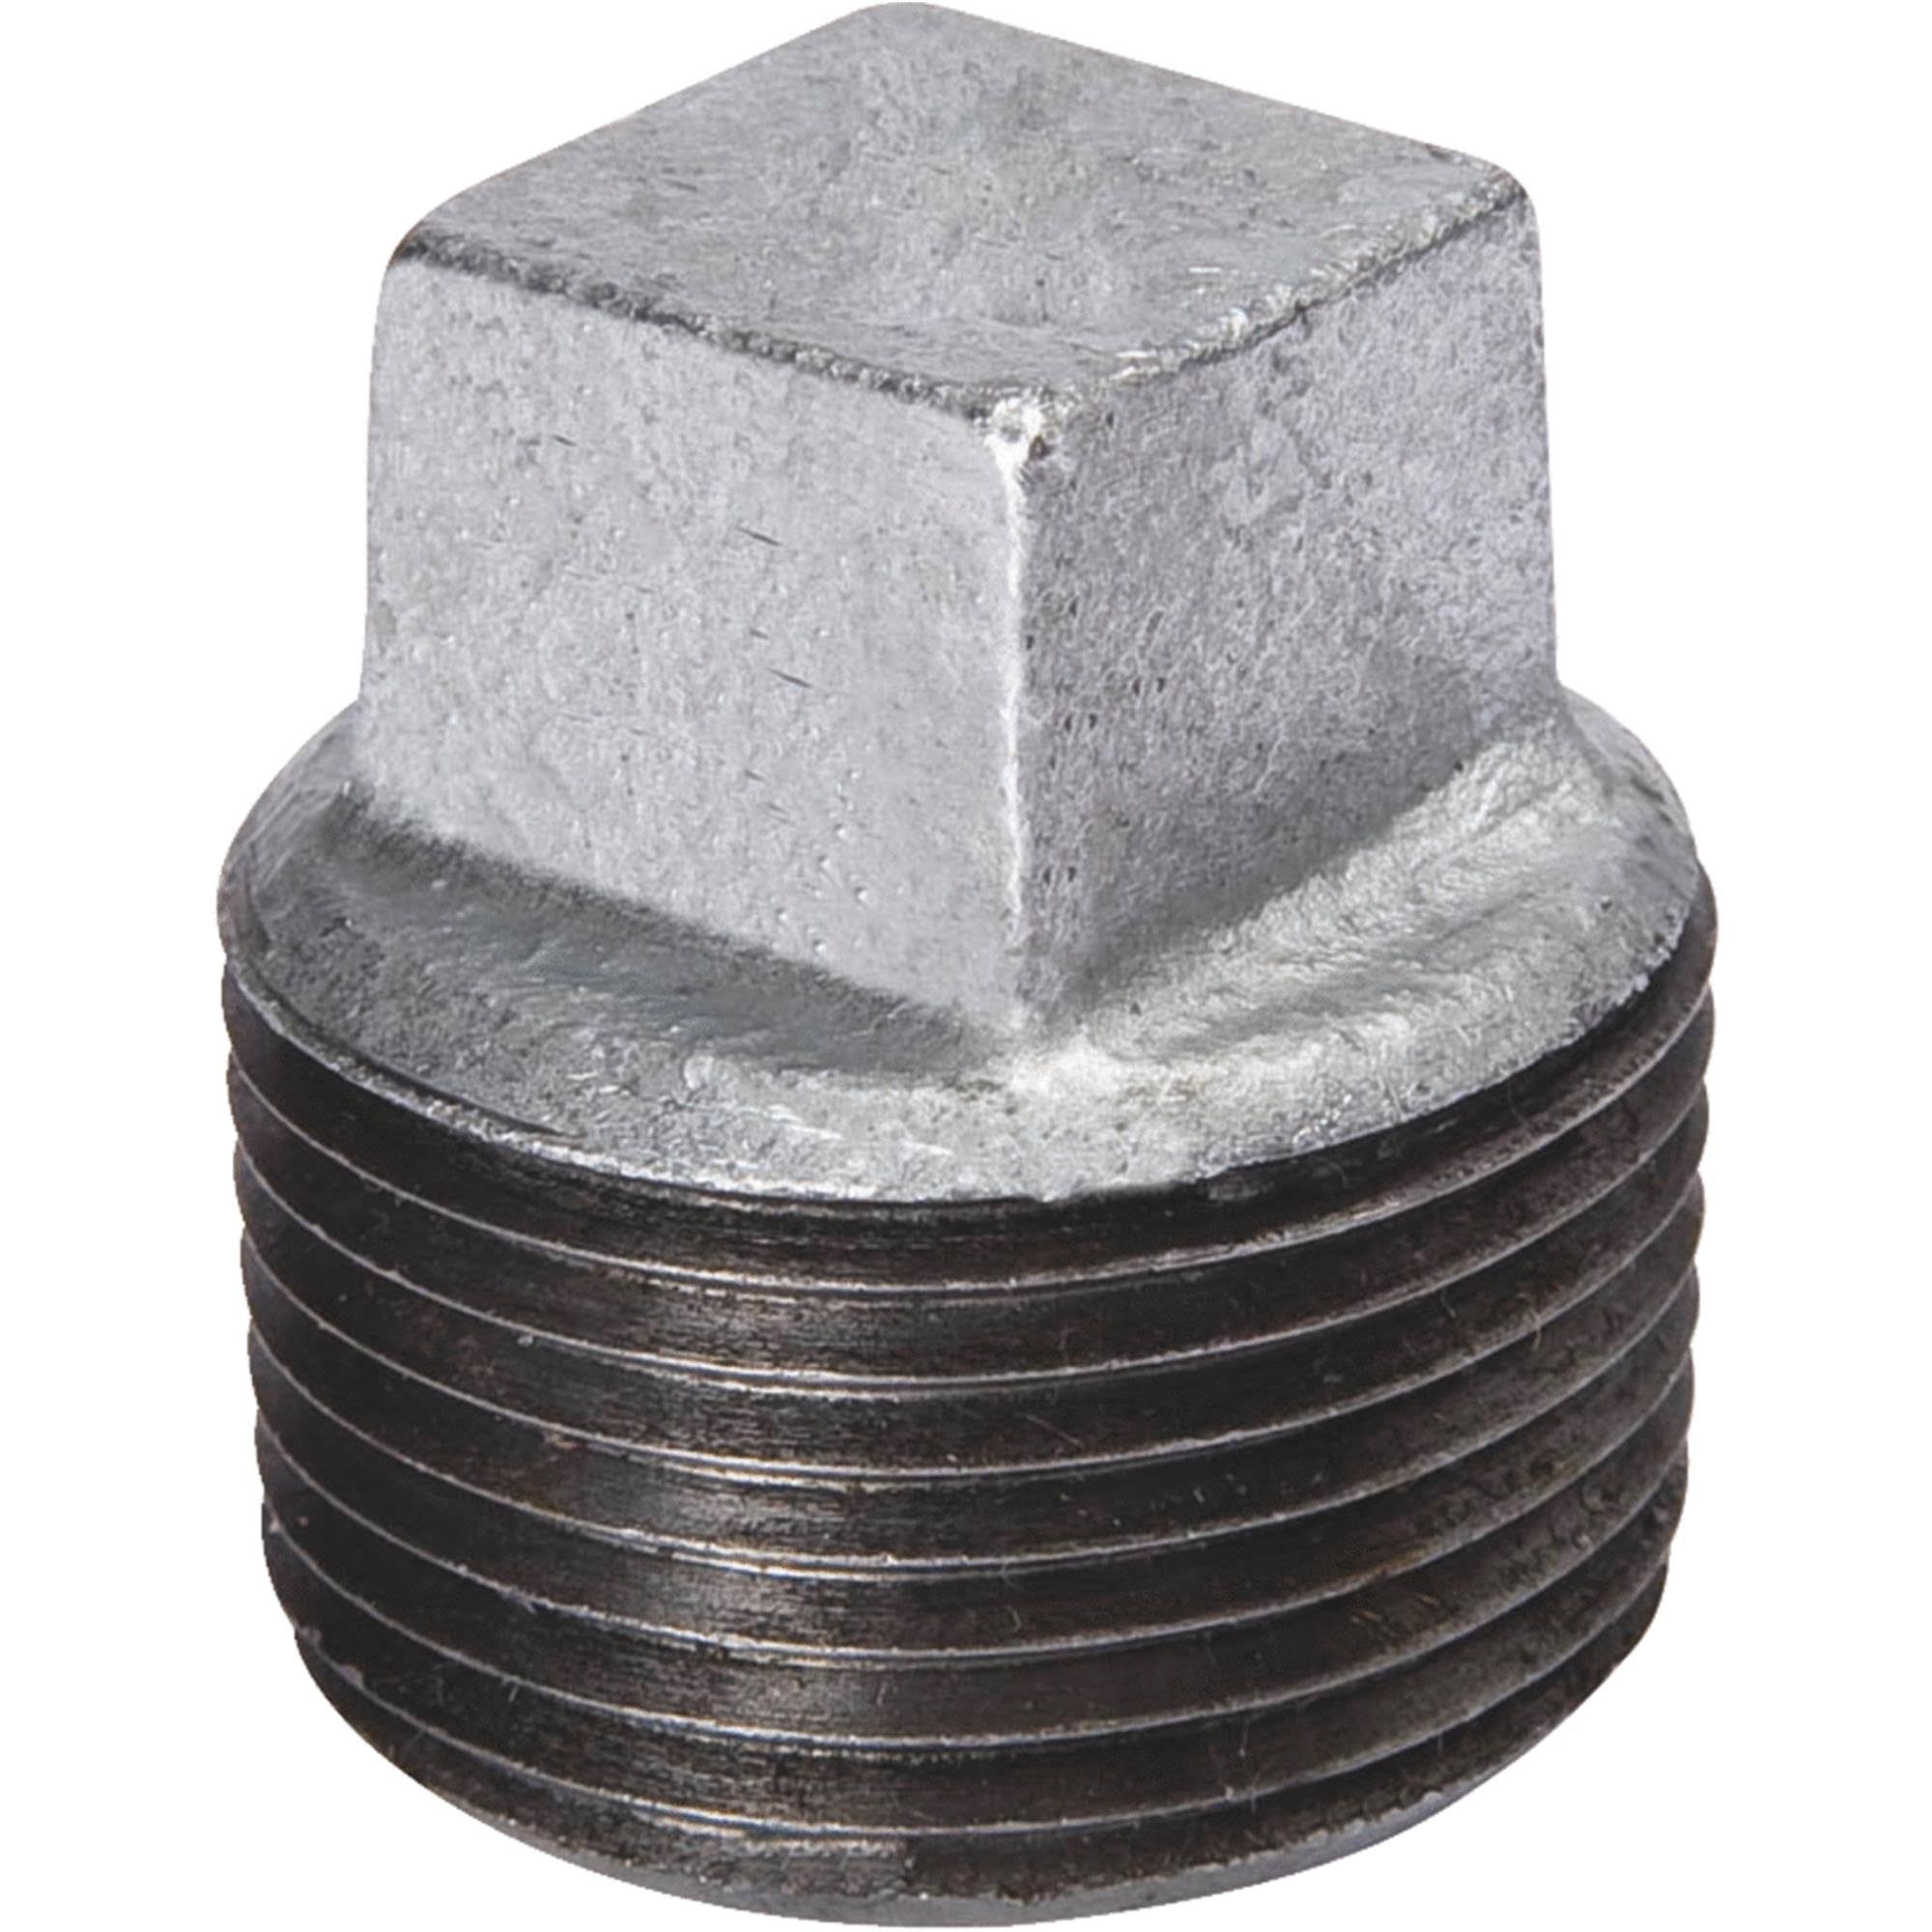 "Mueller Global Malleable Iron Plug - 1 1/4"", Galvanized"